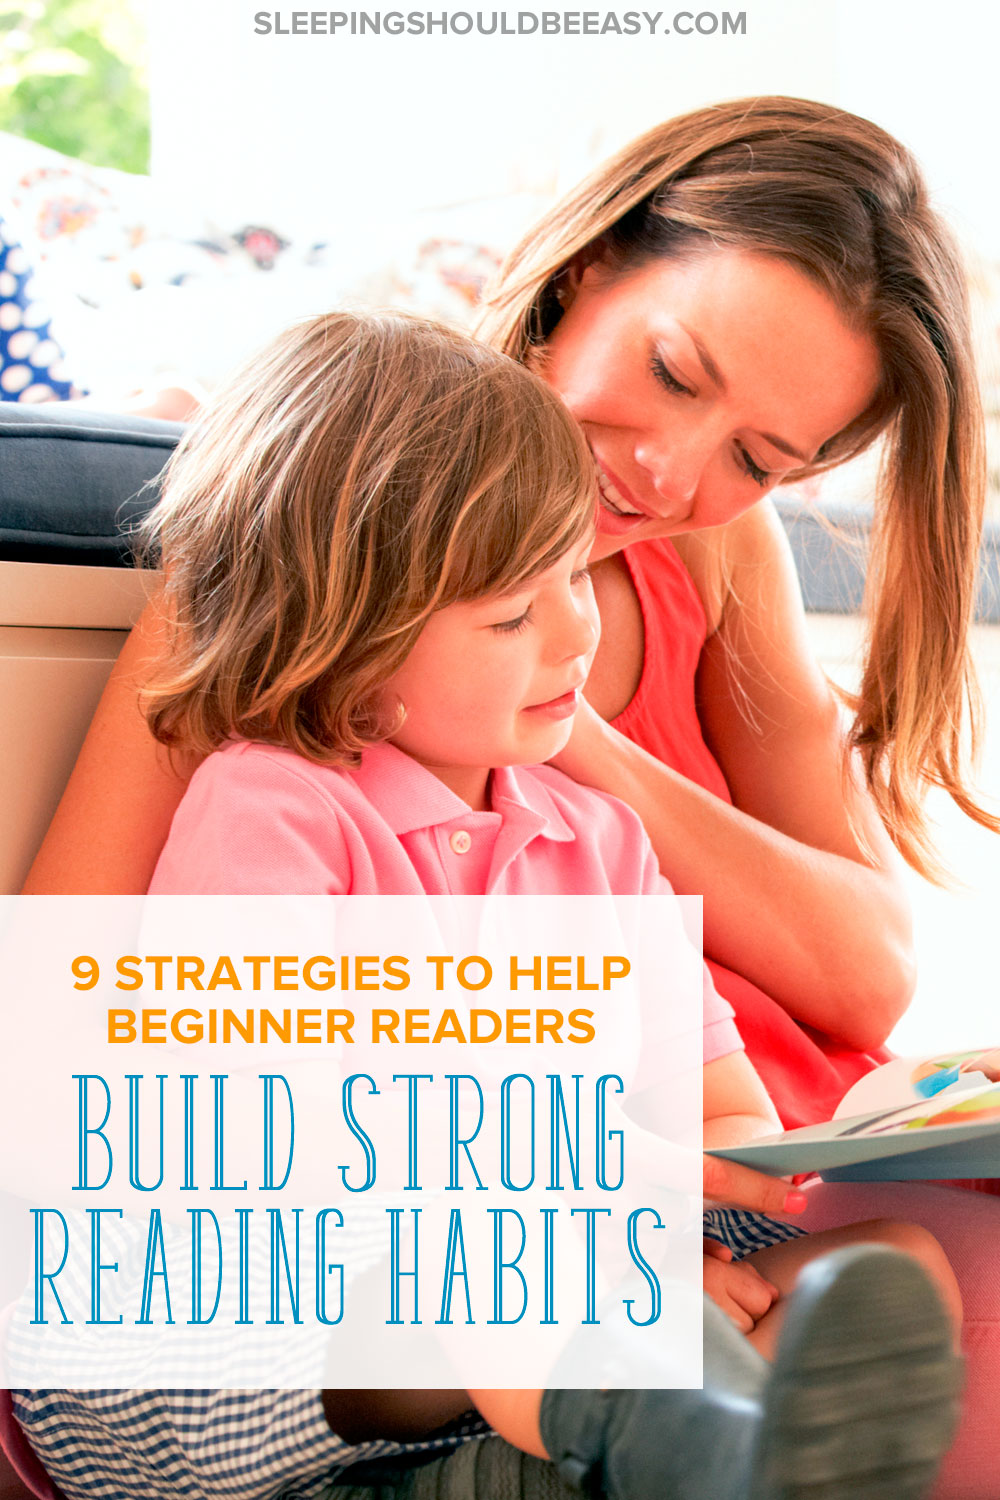 Want to encourage a love of reading in your child? Help your beginner reader build strong reading habits with these 9 strategies.